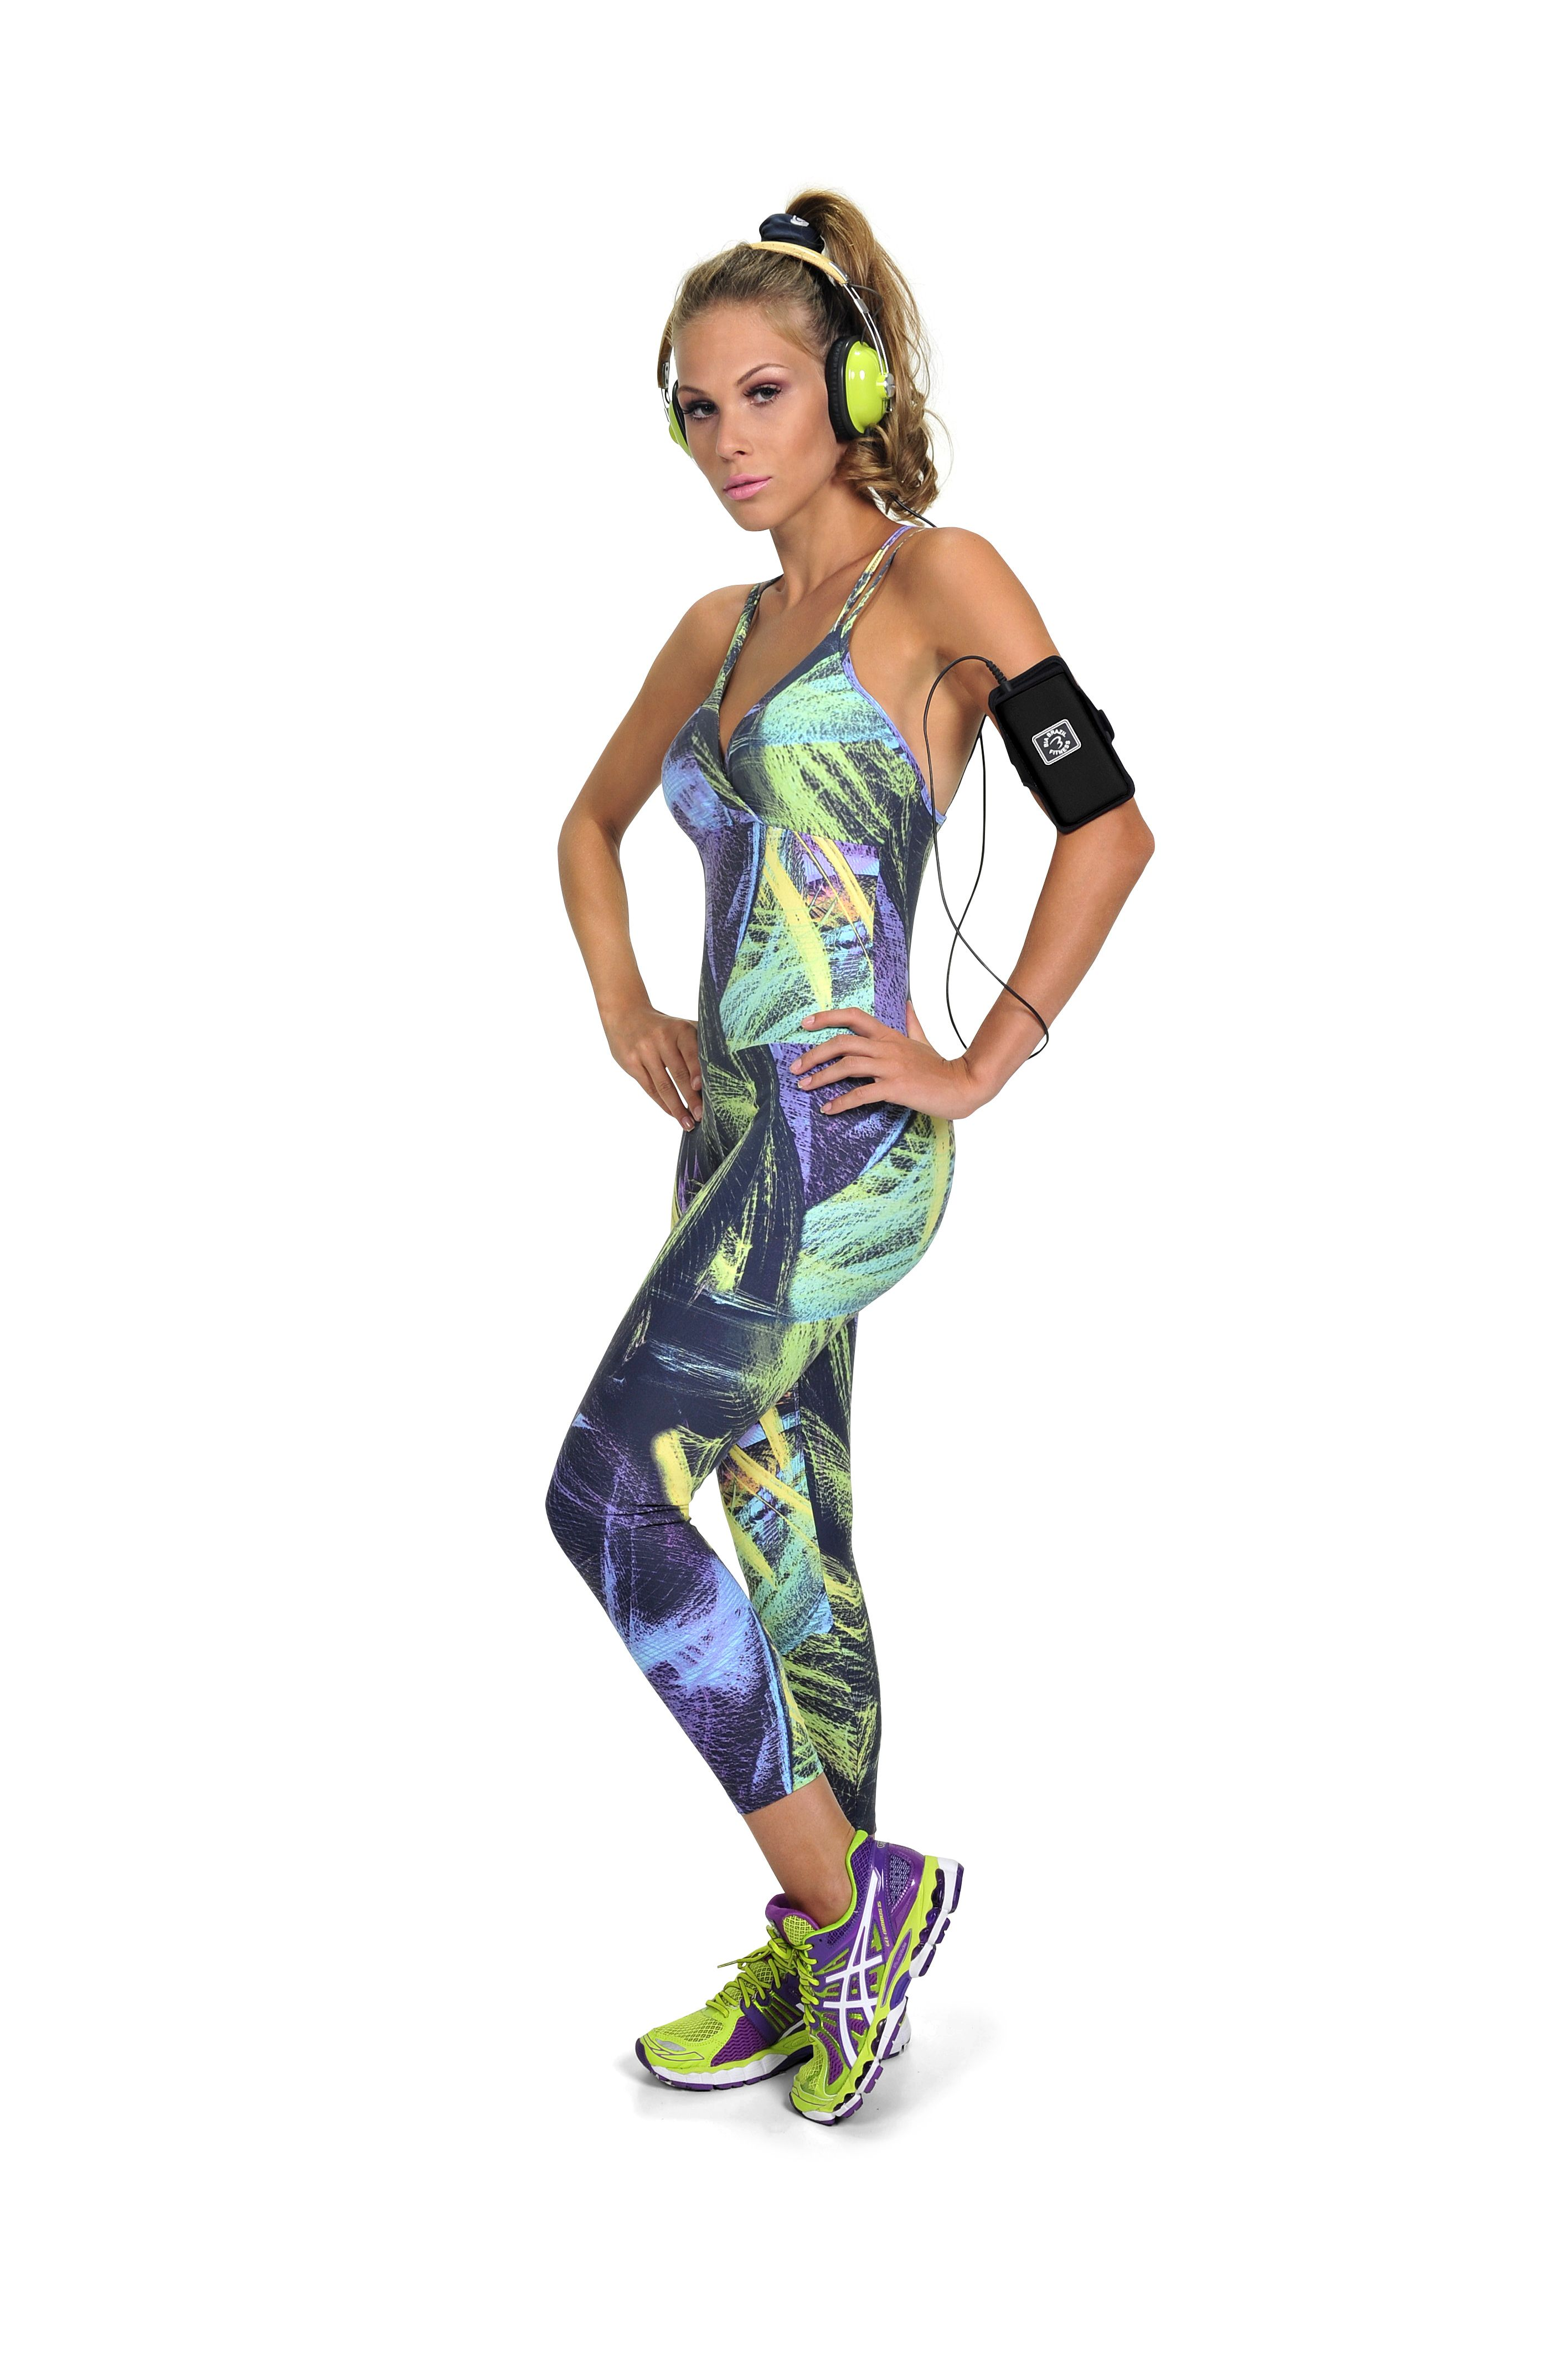 73c94ed7185 Bia Brazil - NEW Cute Workout Clothes by BEST FIT BY BRAZIL  www.bestfitbybrazil.com - yoga pants